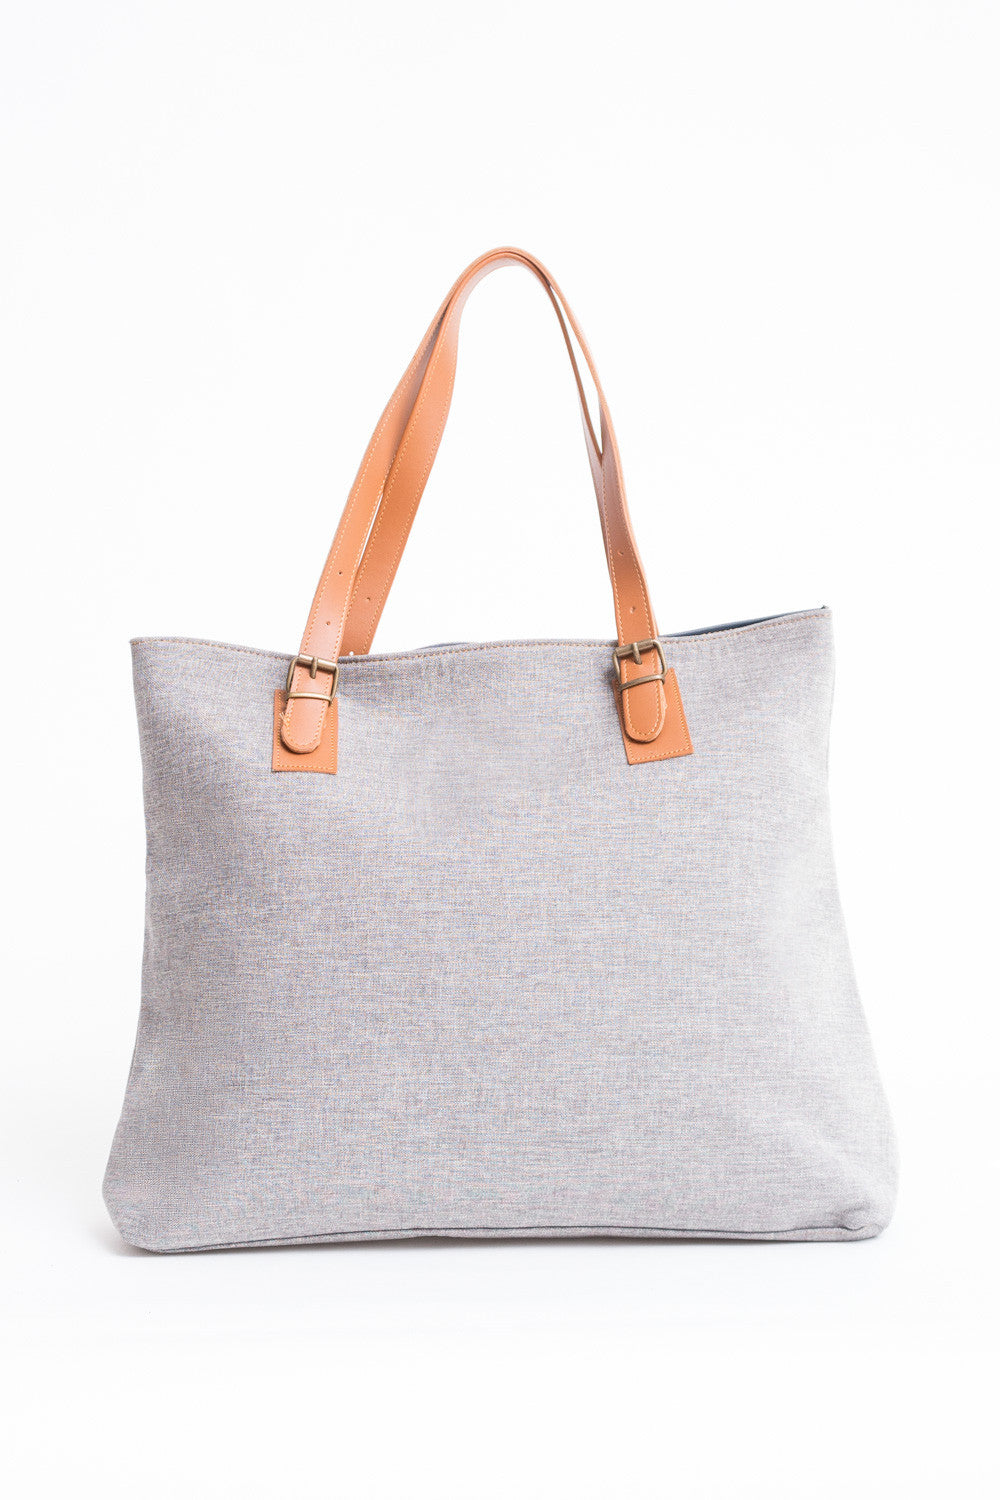 SIENA SHOPPER BAG LIGHT GREY